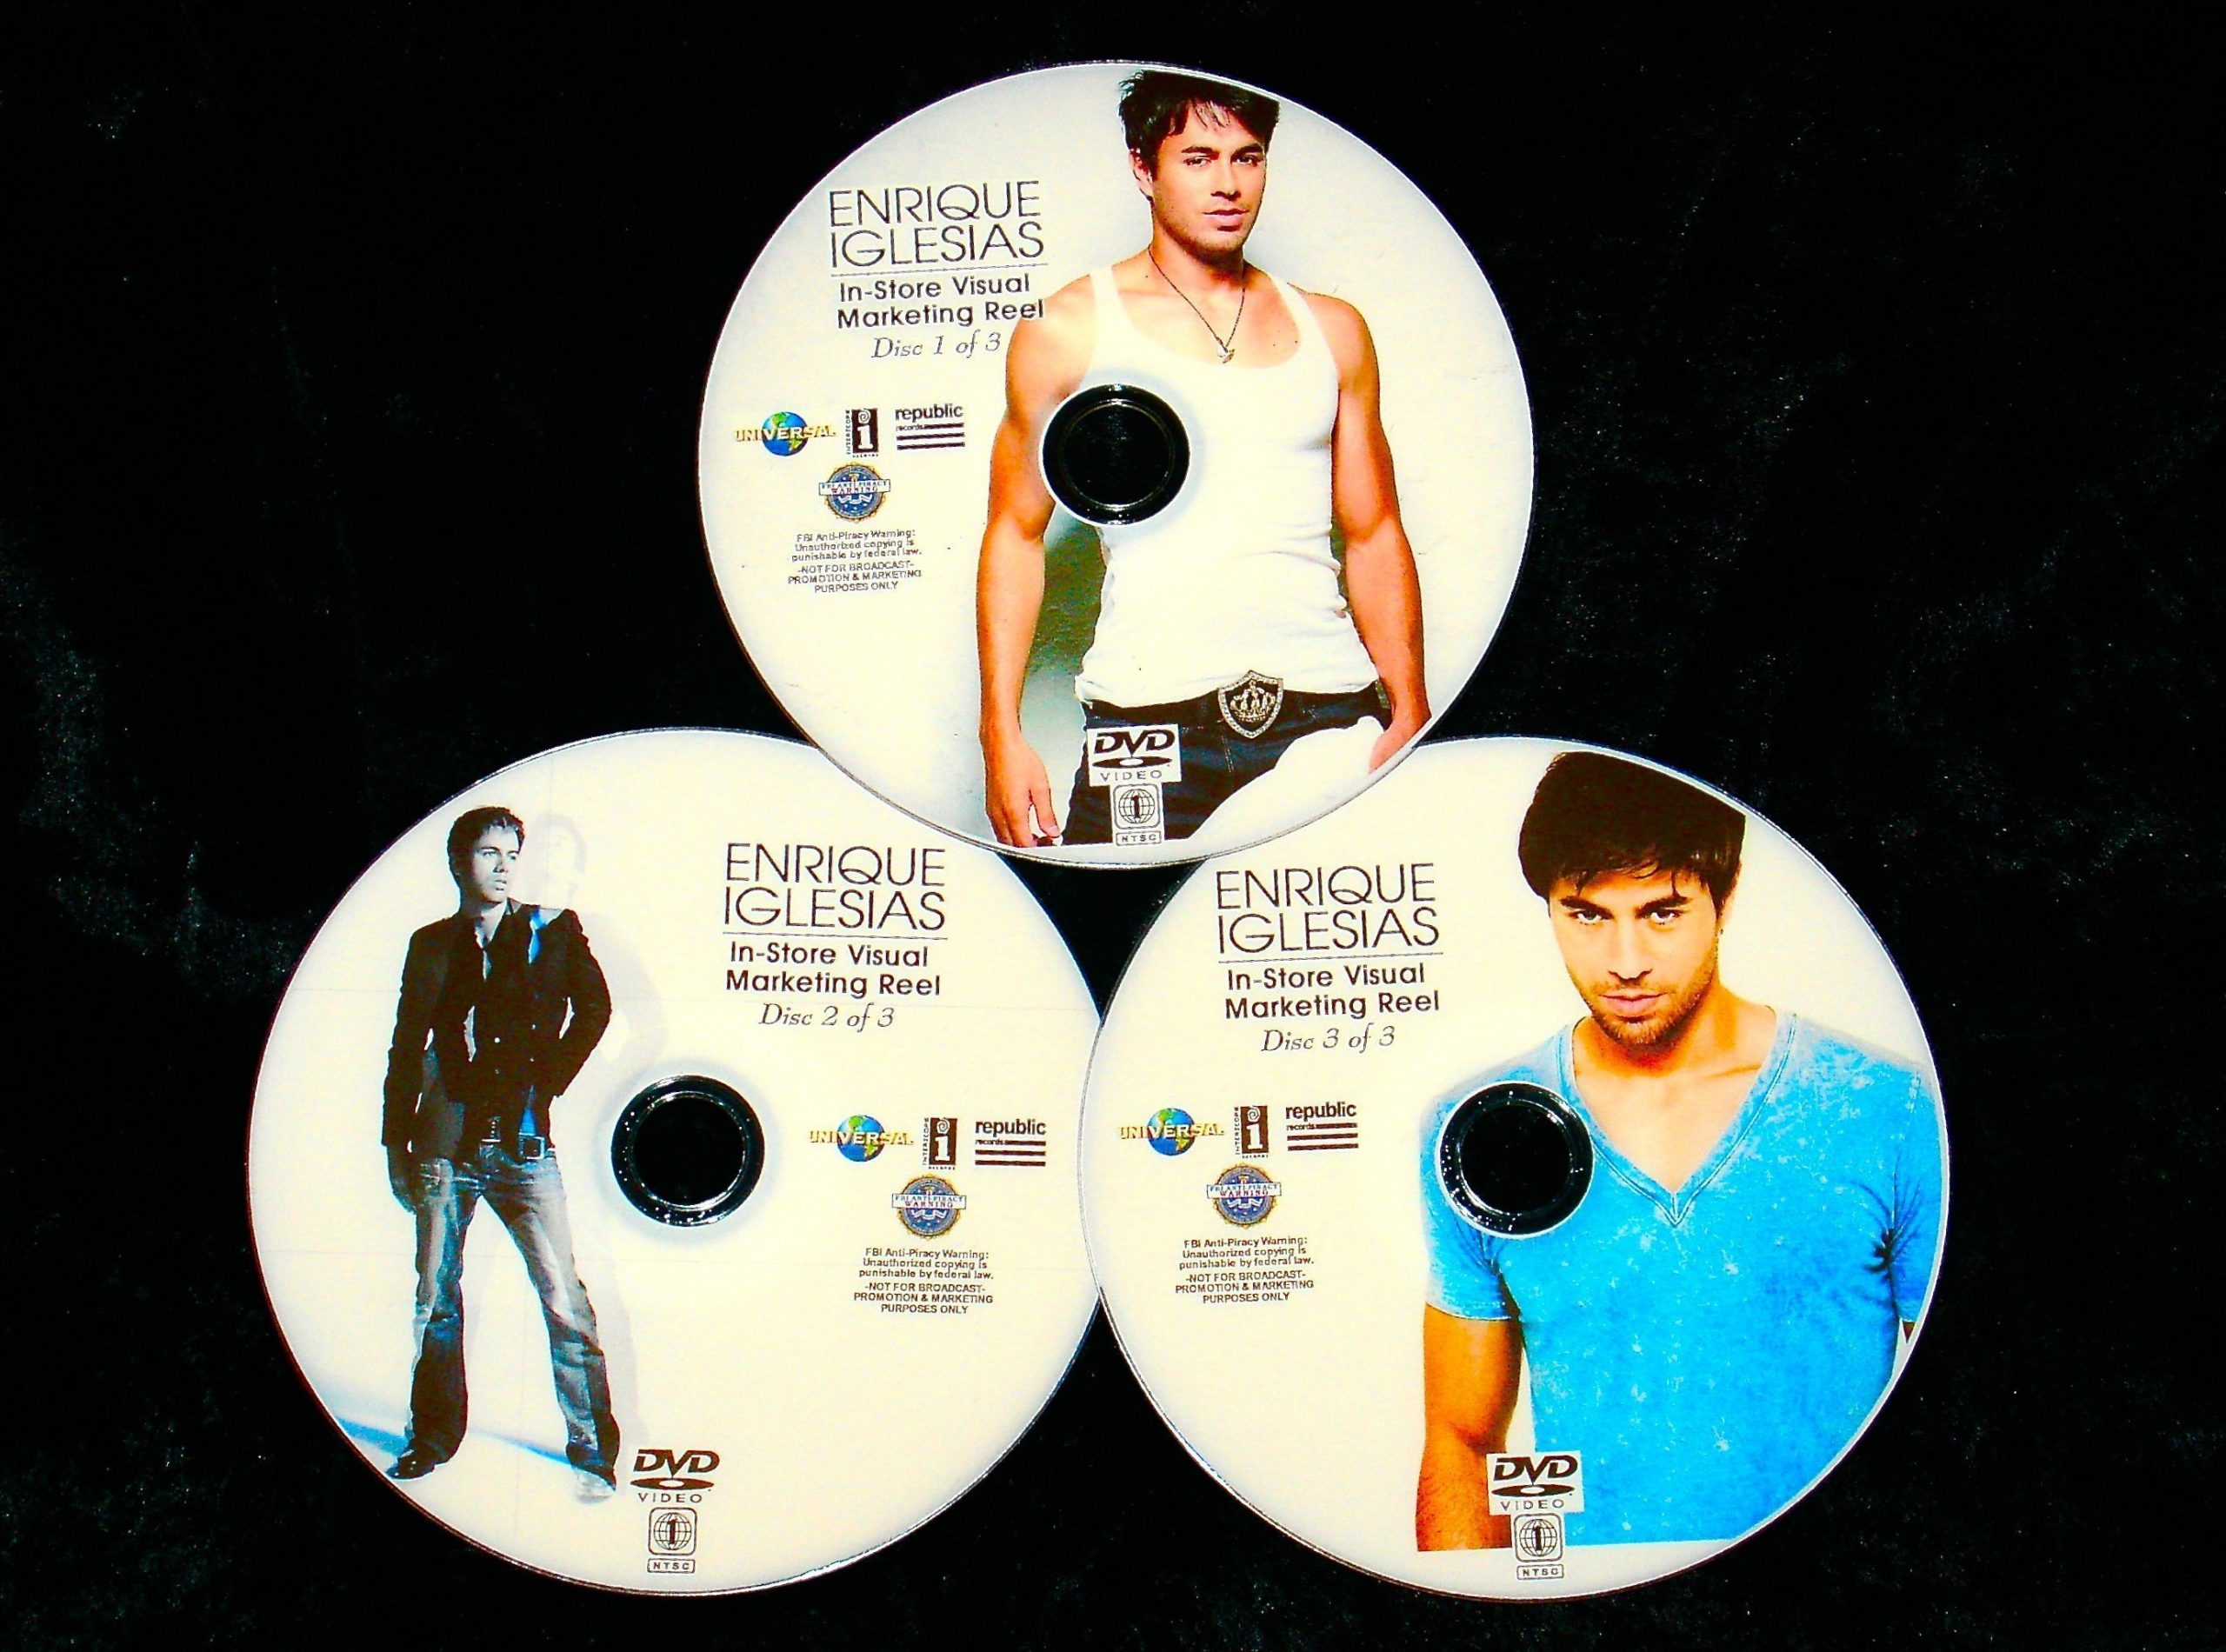 ENRIQUE IGLESIAS In-Store Visual Marketing Reel 55 Music Videos 3 DVD Set